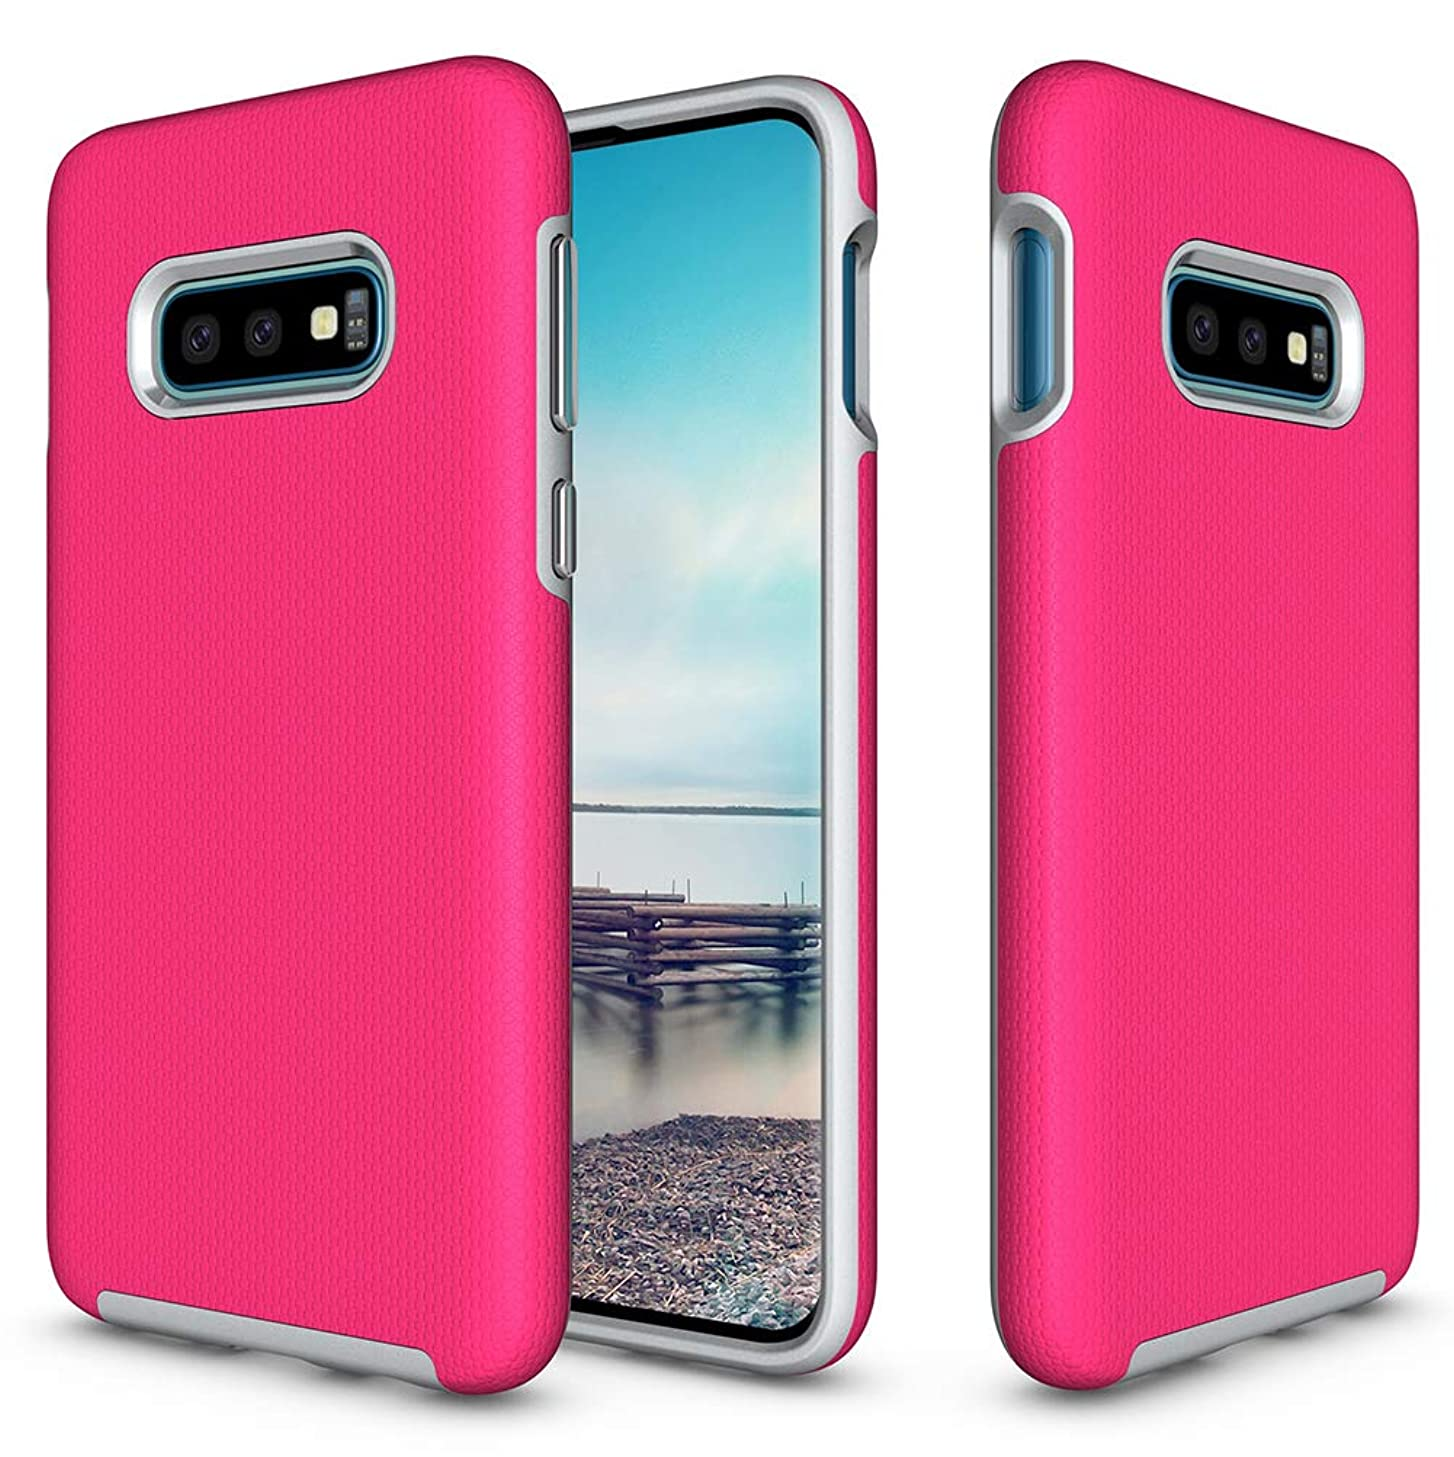 KUMTZO Compatible Galaxy S10+ Plus Case,Armor Shock Absorbing Heavy Duty TPU + PC [Dual Guard Protection] Anti-Scratch Hybrid Bumper Series Durable Cover for Samsung Galaxy S10 Plus 6.4 inch(Hot Pink)